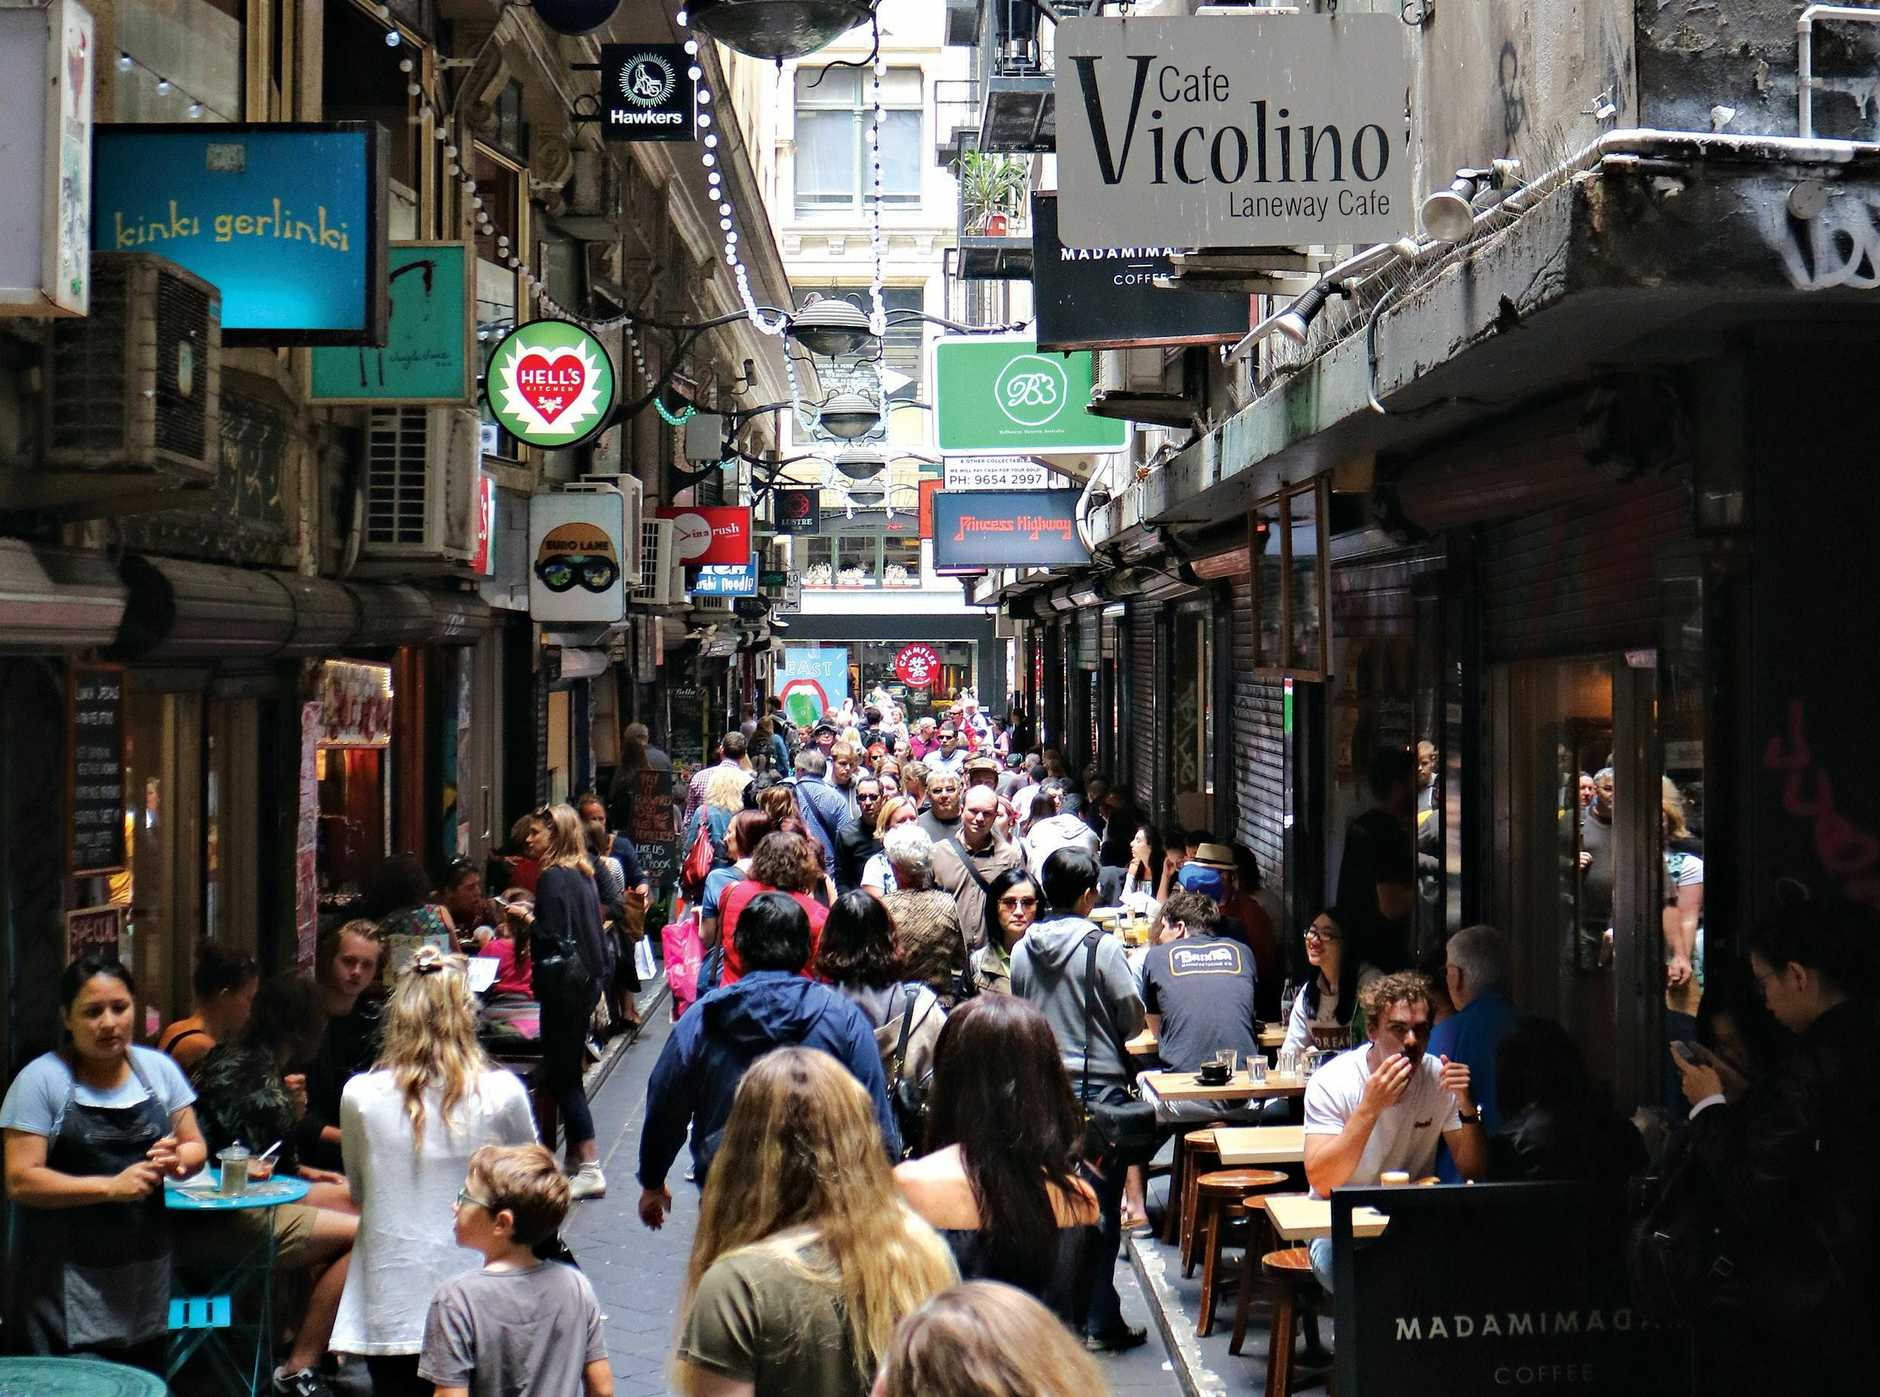 The opening of a narrow laneway in Melbourne's central business district reveals a number of cafes and bars lining the walkway.